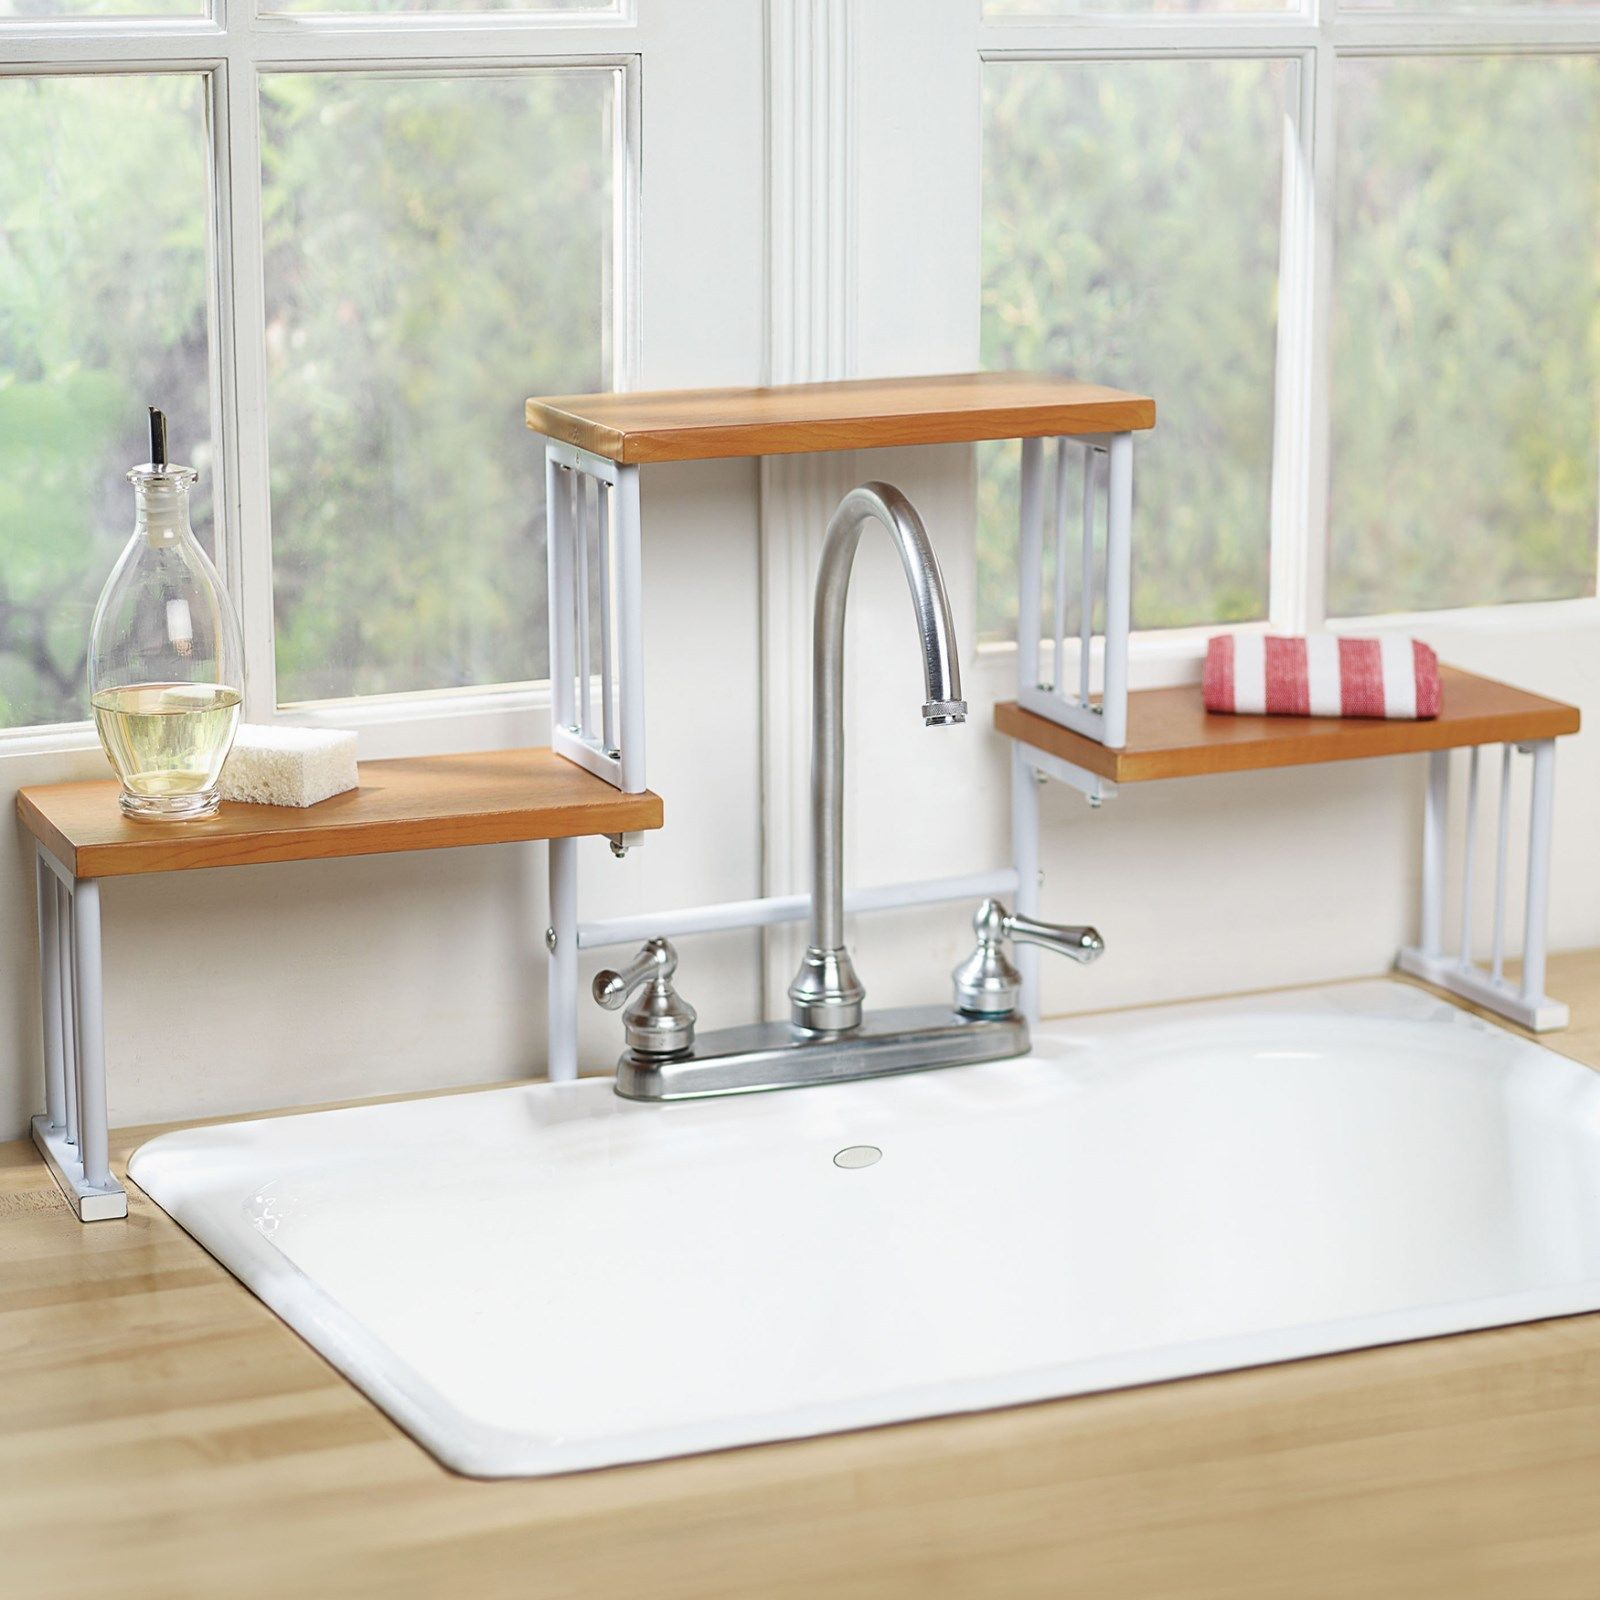 Space Saver Cabinets Kitchen 2 Tier Over The Sink Shelf Kitchen Faucet Space Saver